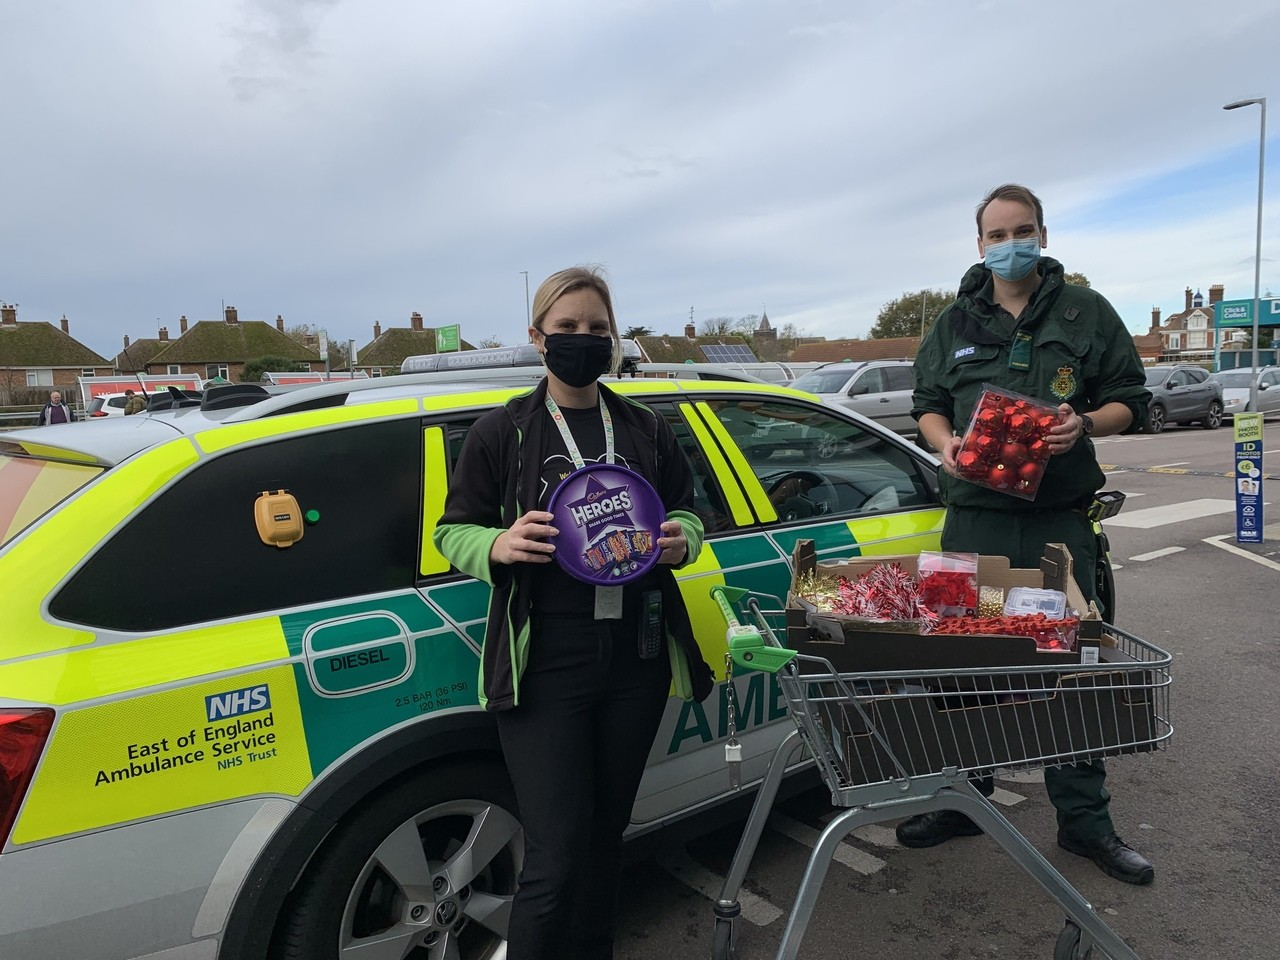 Donation of decorations | Asda Clacton-on-Sea